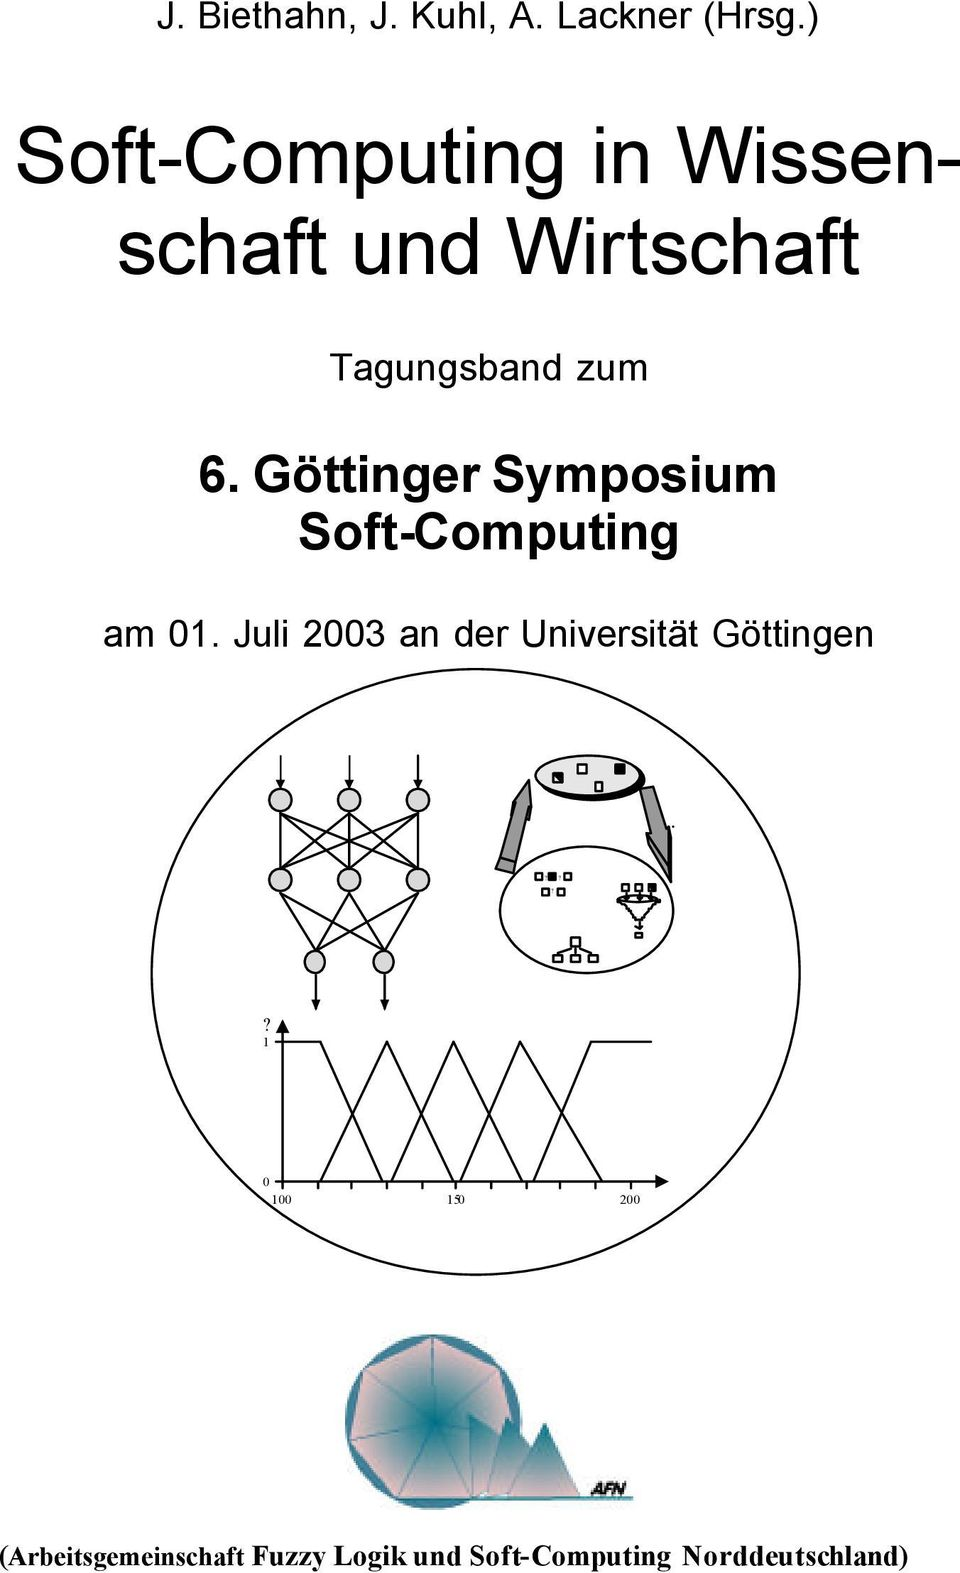 Göttinger Symposium Soft-Computing am 01.